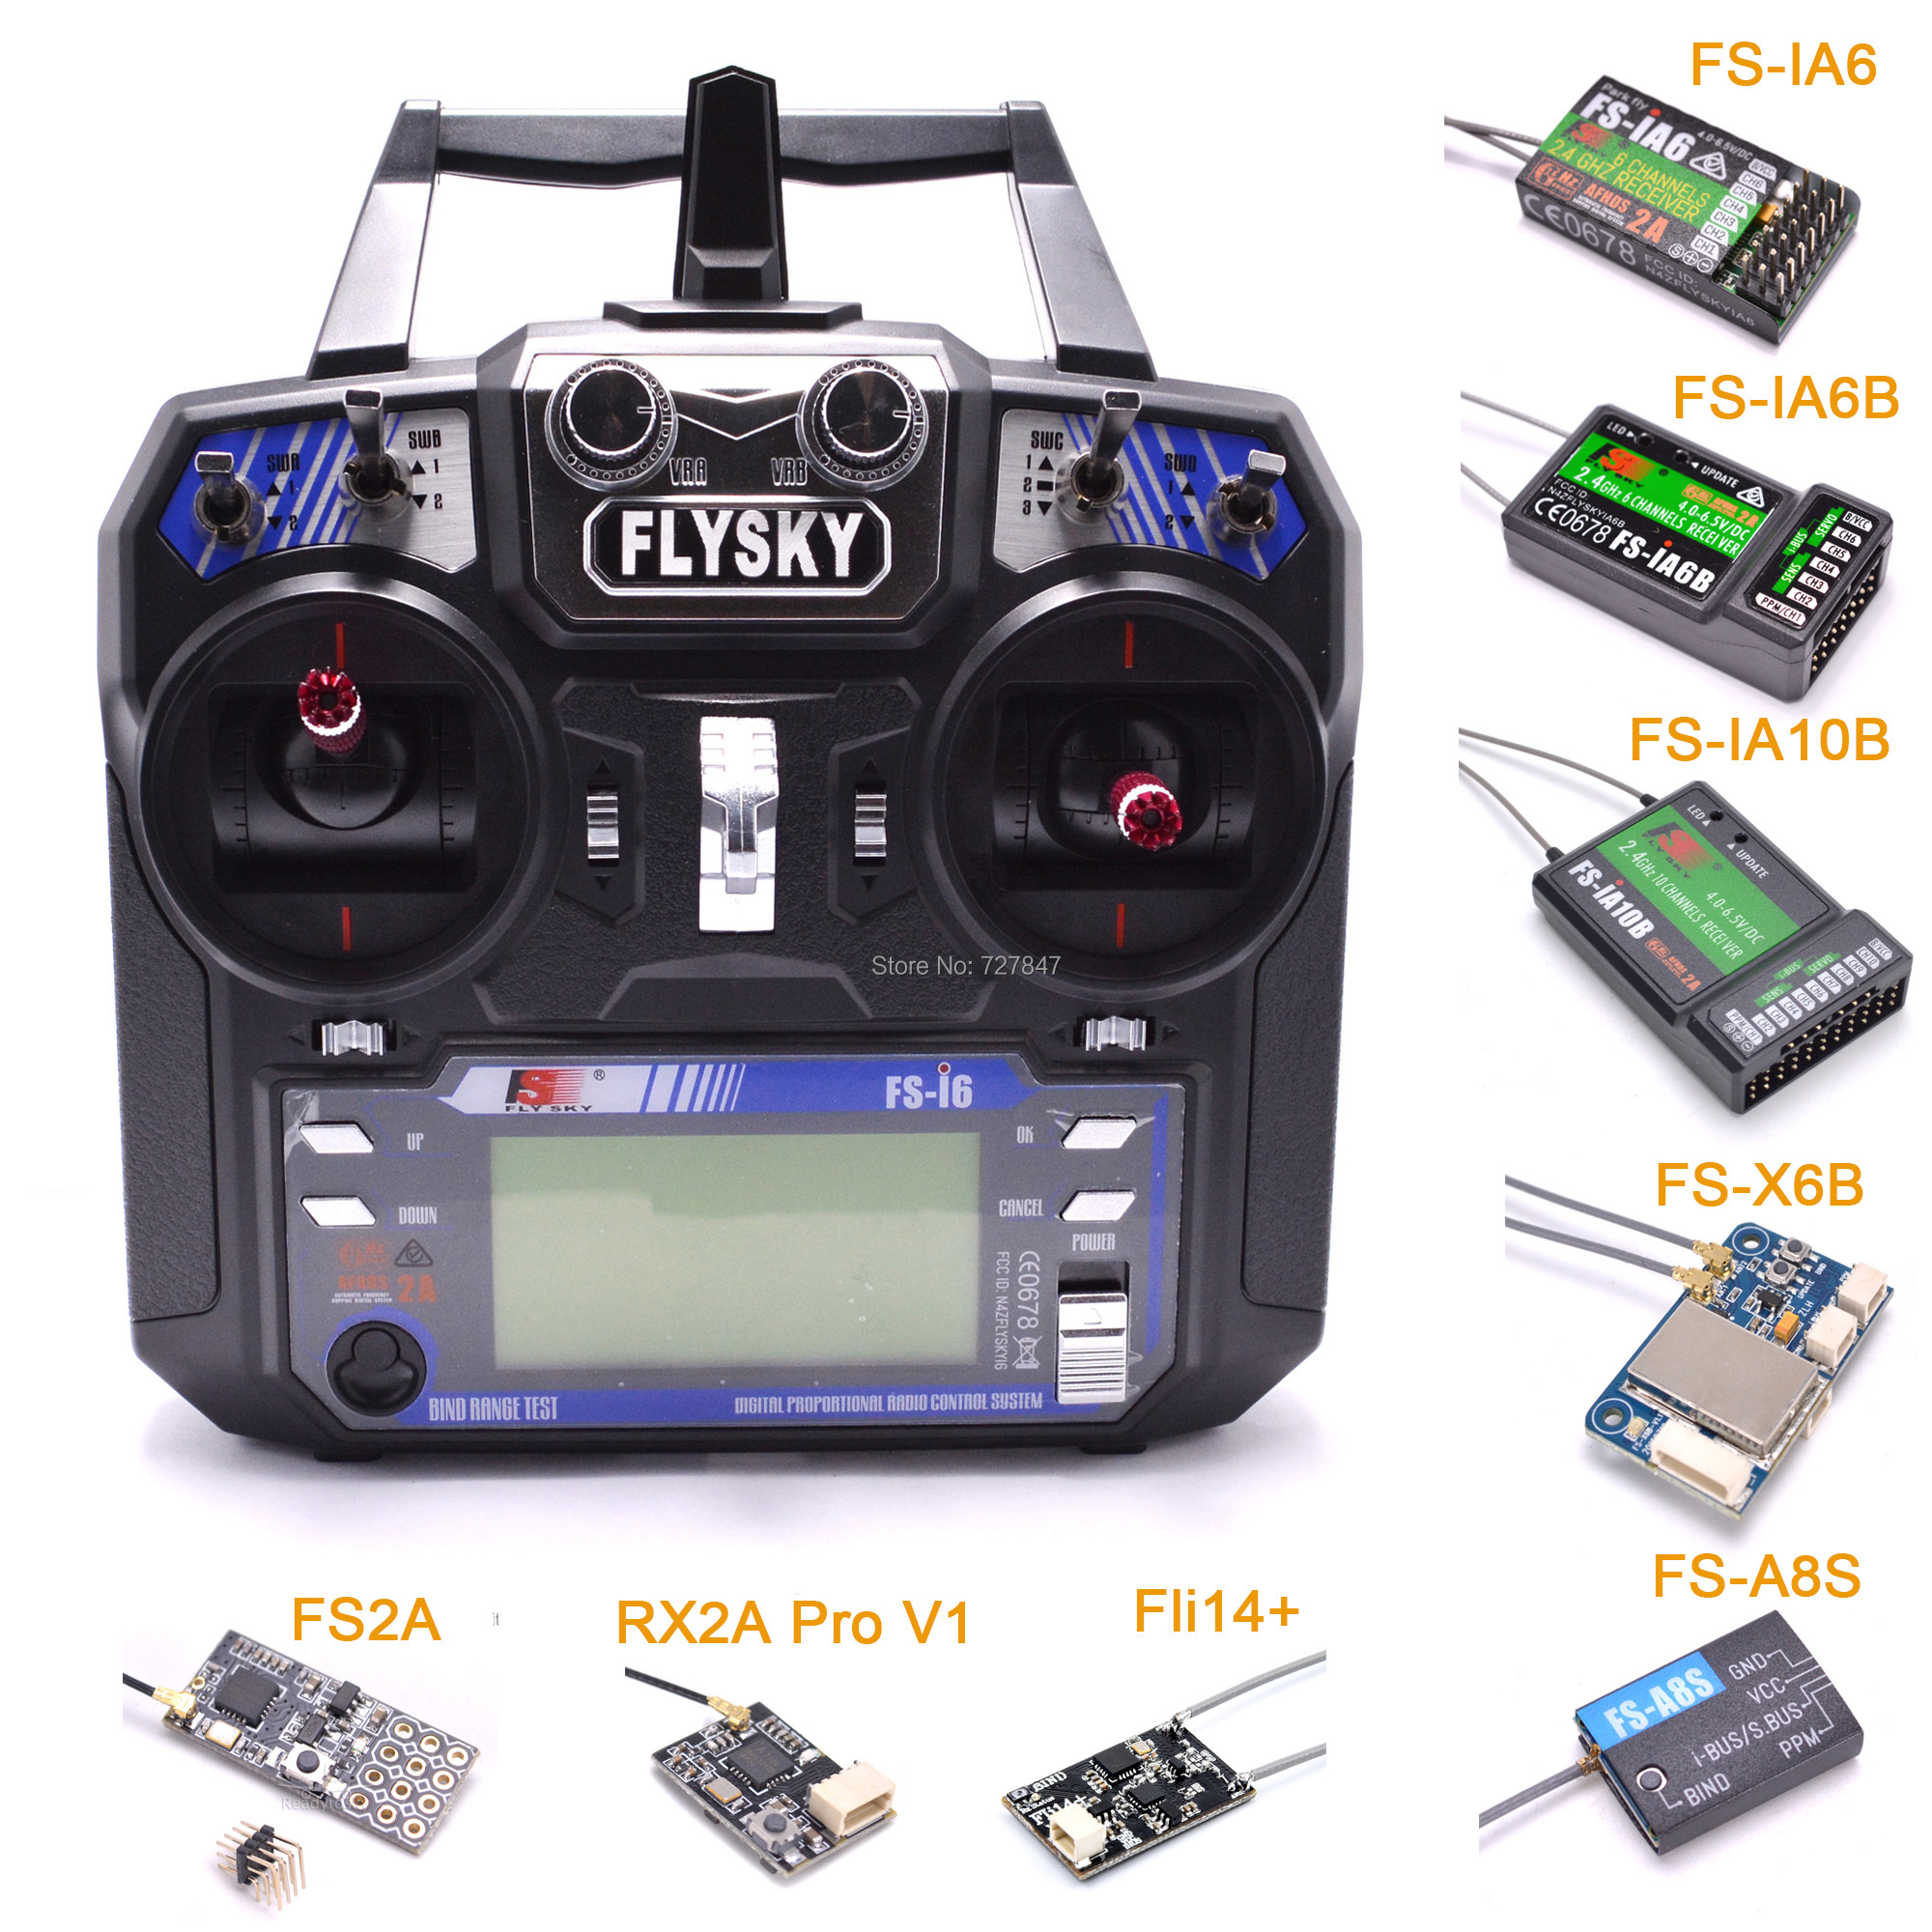 FLYSKY FS-i6 I6 2.4G 6CH AFHDS Transmitter With IA6B X6B A8S R6B IA10B RX2A Receiver Radio Controller For RC FPV Drone Airplane